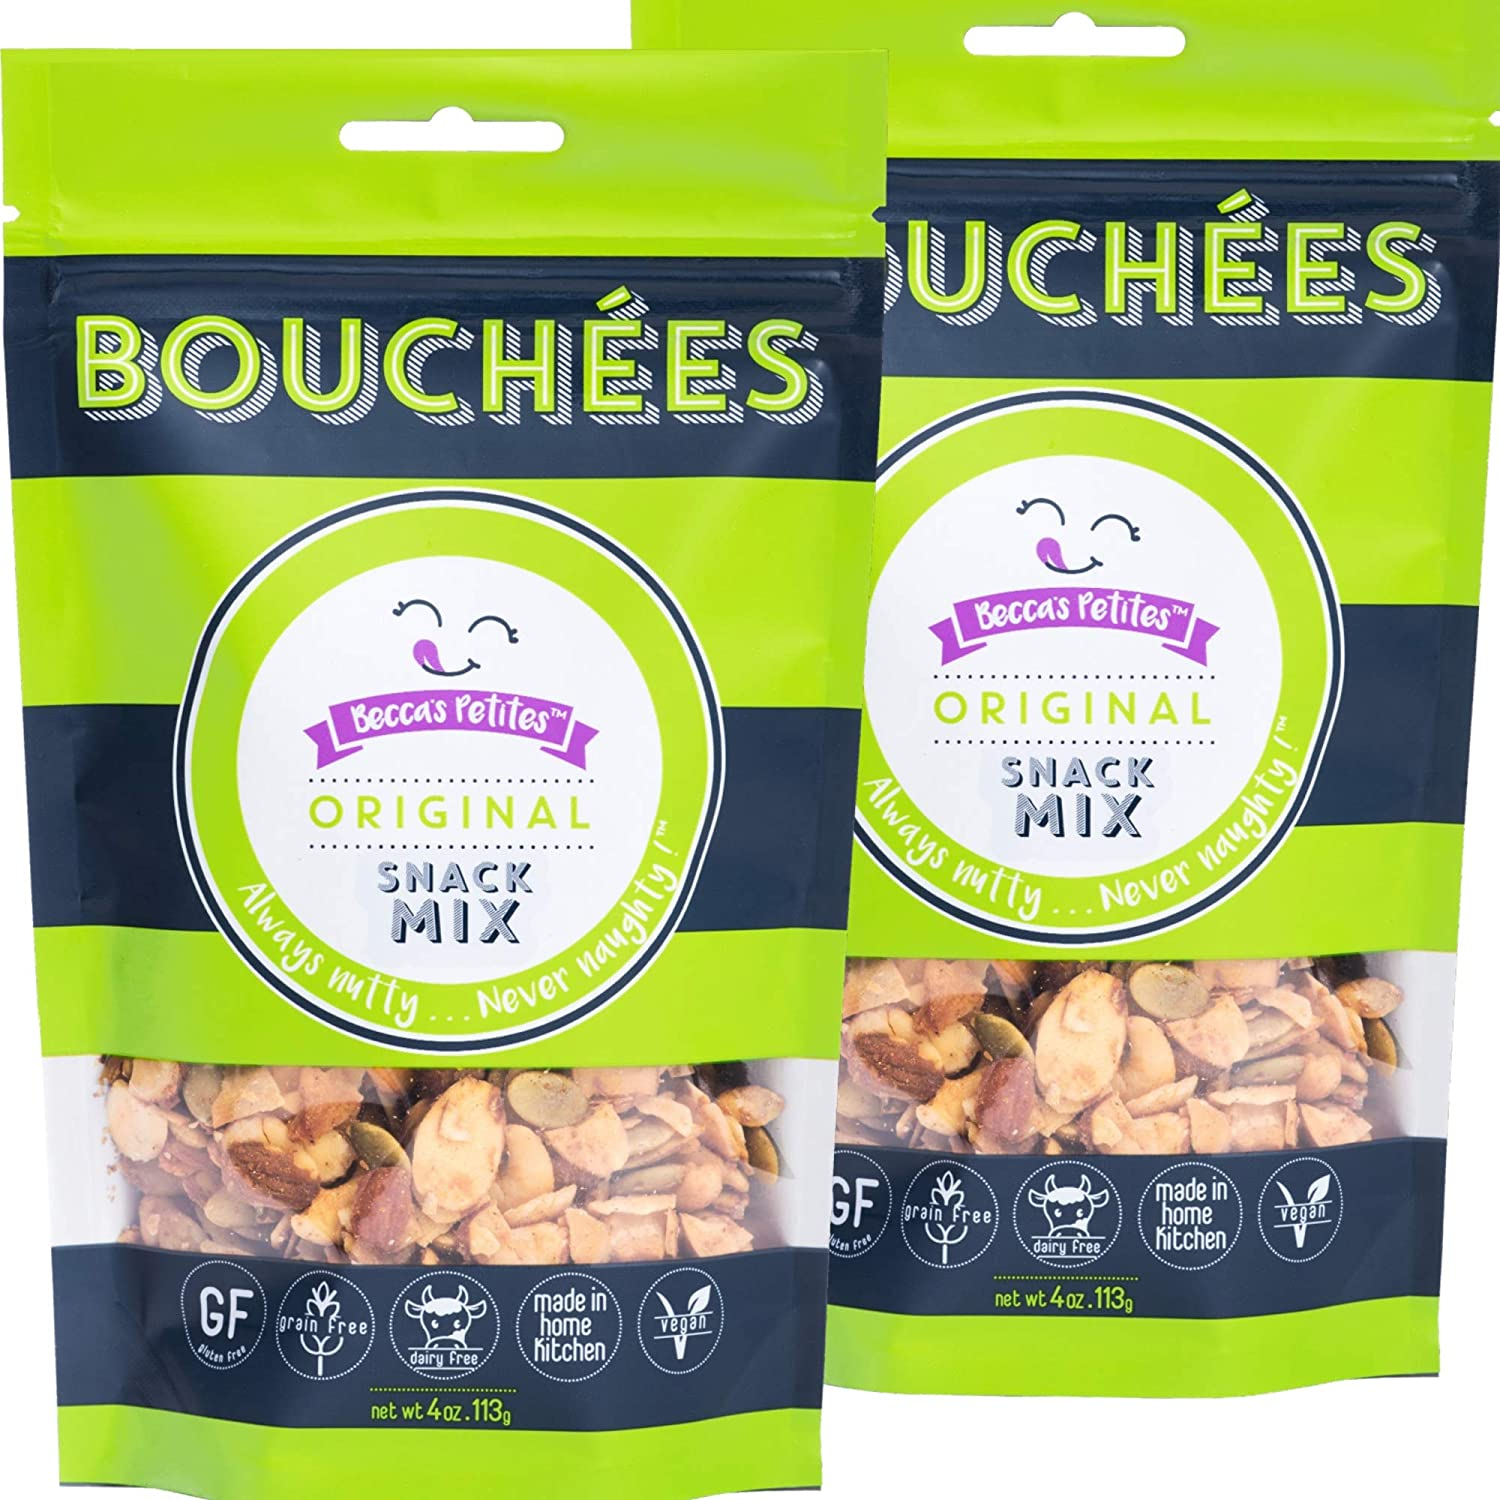 Becca's Petites Grain Free Granola – Mixed Nuts, Seeds - Original (Maple Syrup, Apple, Cinnamon) – Paleo, Gluten Free Snack I Granola or Cereal Topping - No Artificial Ingredients, 4 Oz Bag (2-Pack)